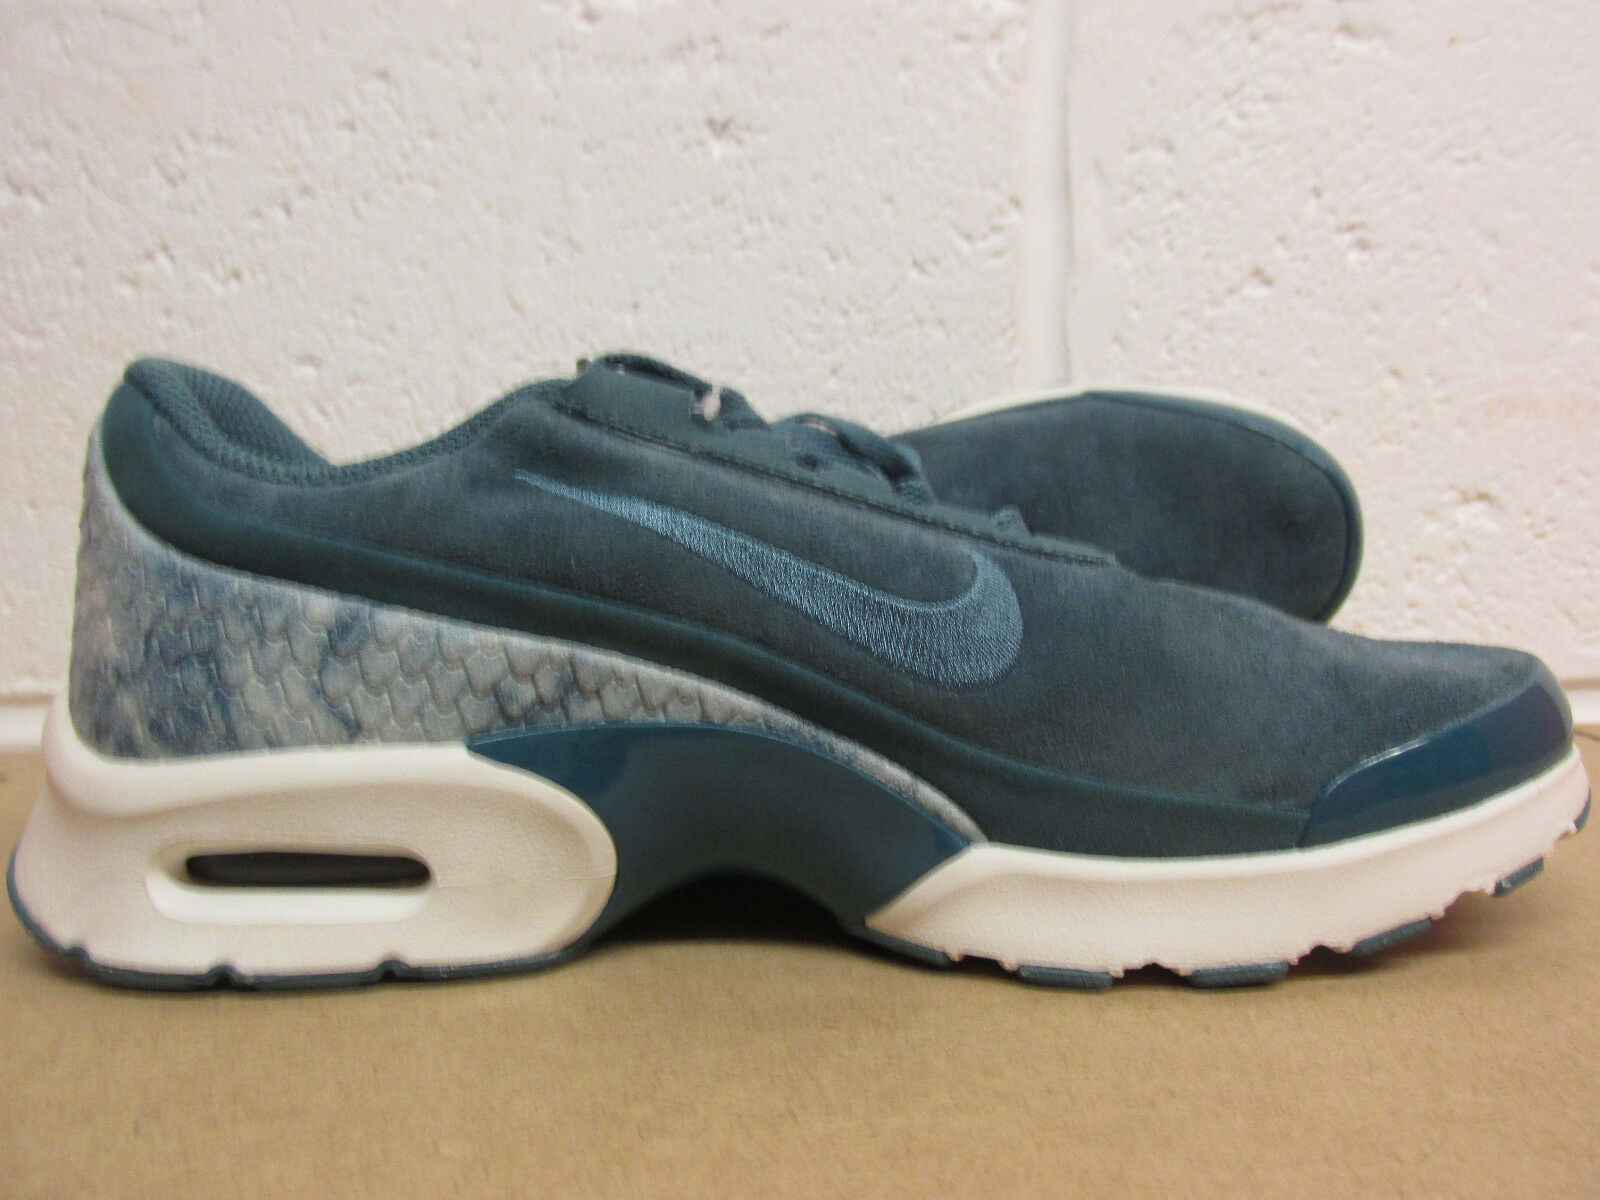 Nike air max jewell 917672 300 womens trainers sneakers shoes SAMPLE